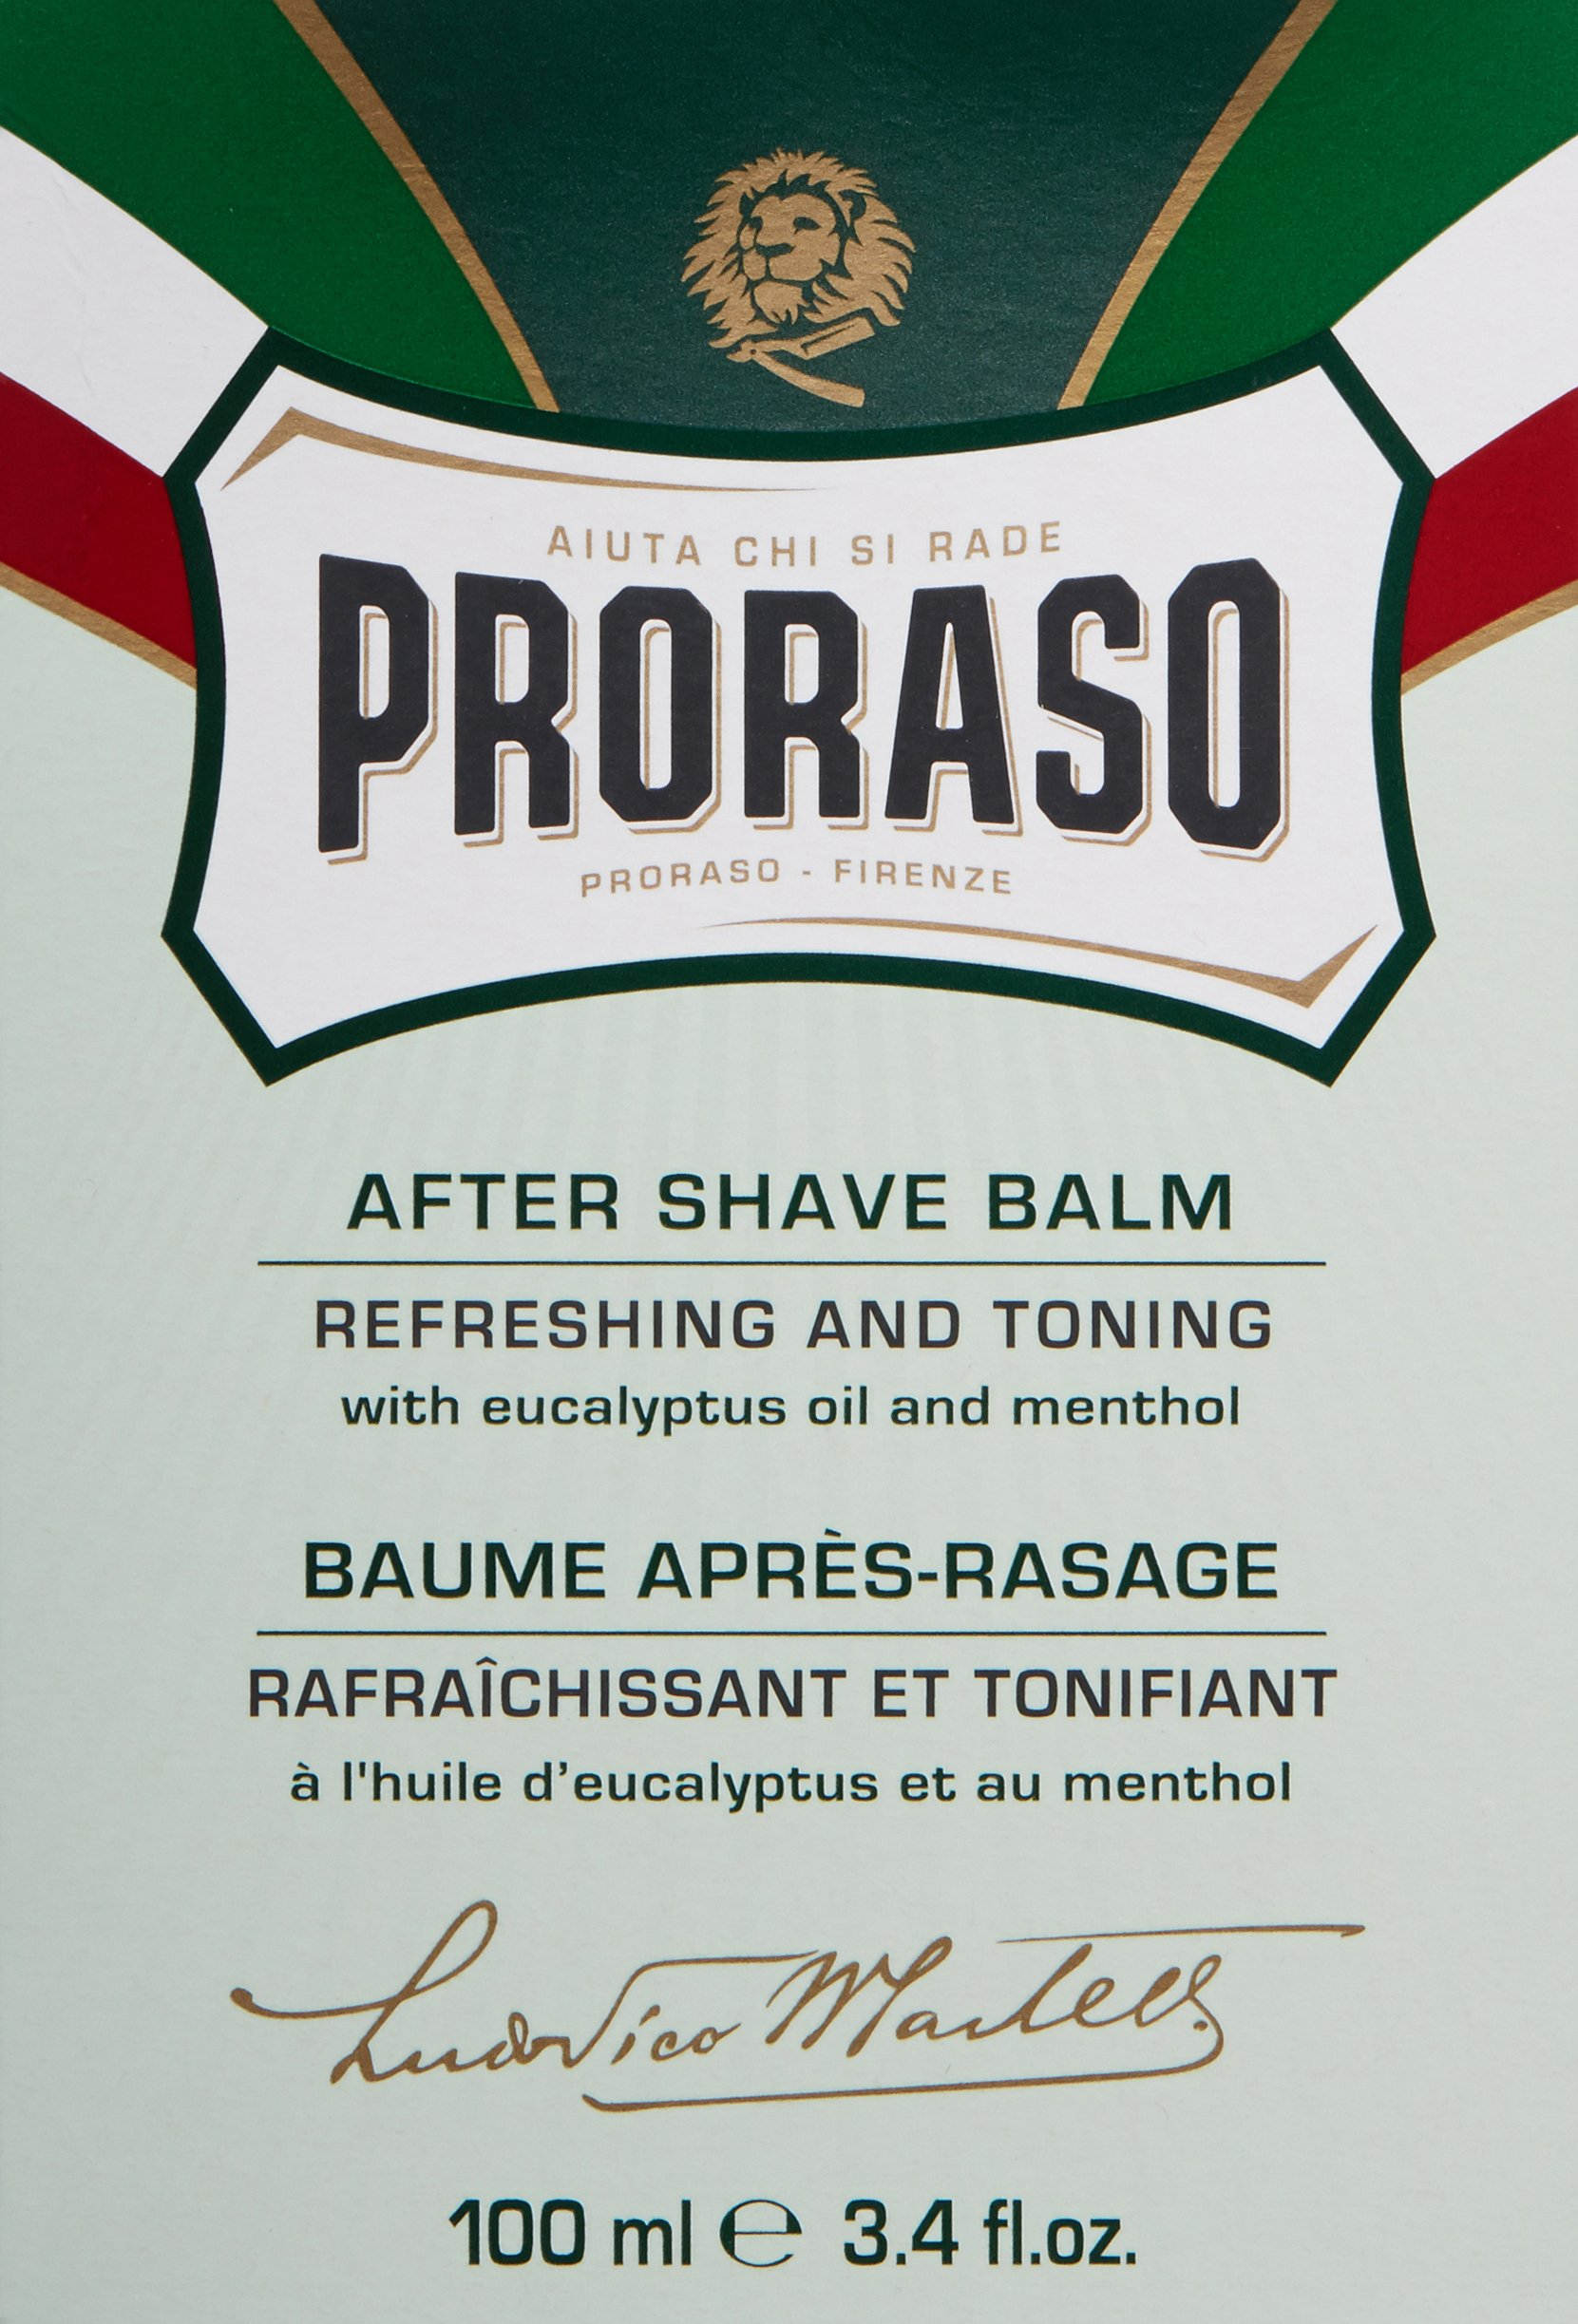 Proraso After Shave Balm, Refreshing and Toning, 3.4 fl oz by Proraso (Image #3)